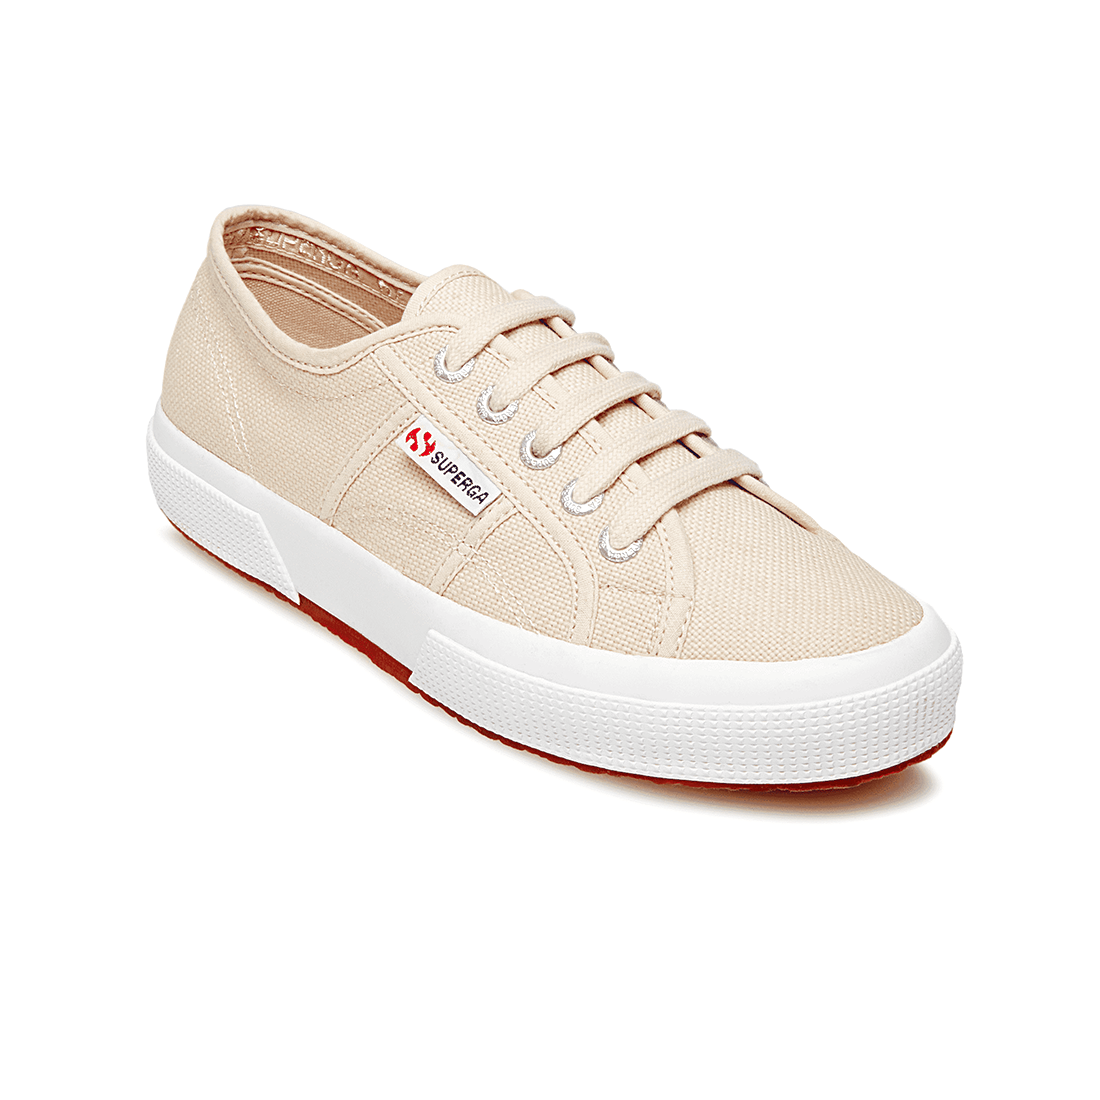 Superga 2750 Cotu Full Cafe Noir 63518